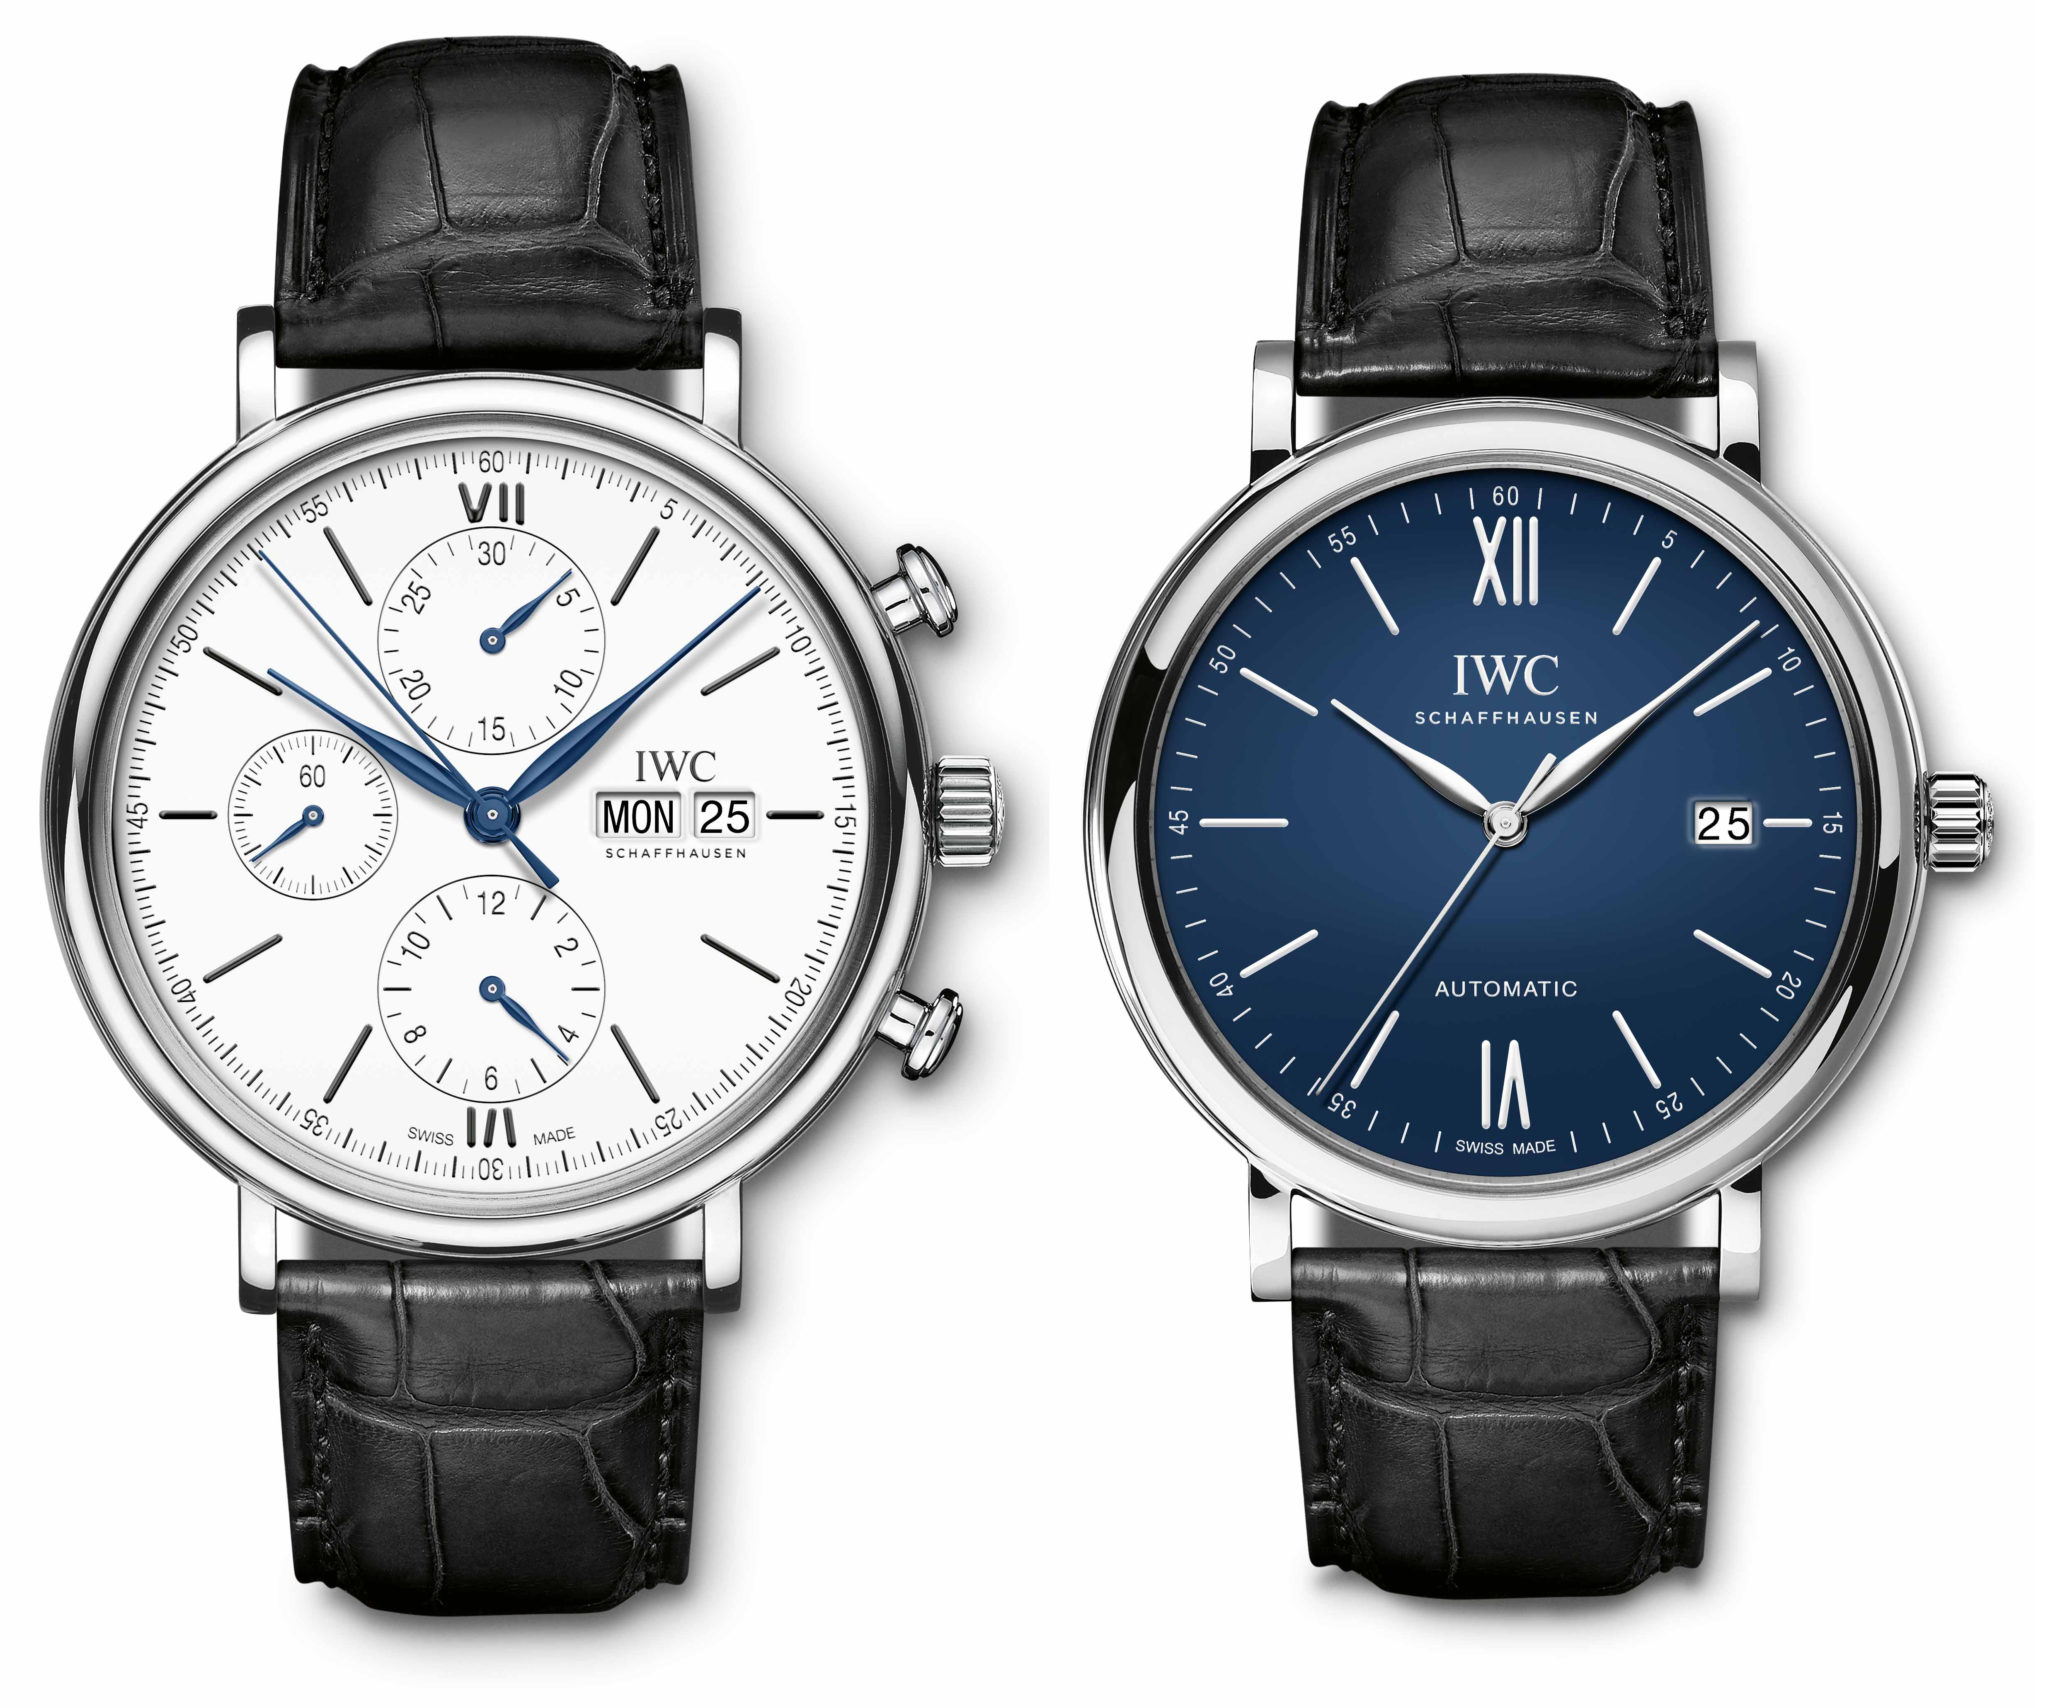 f5f8ba414dd IWC is taking a highly commercial approach to the limited editions in its  150th Jubilee collections. Nothing sells faster than round white and blue  dials.